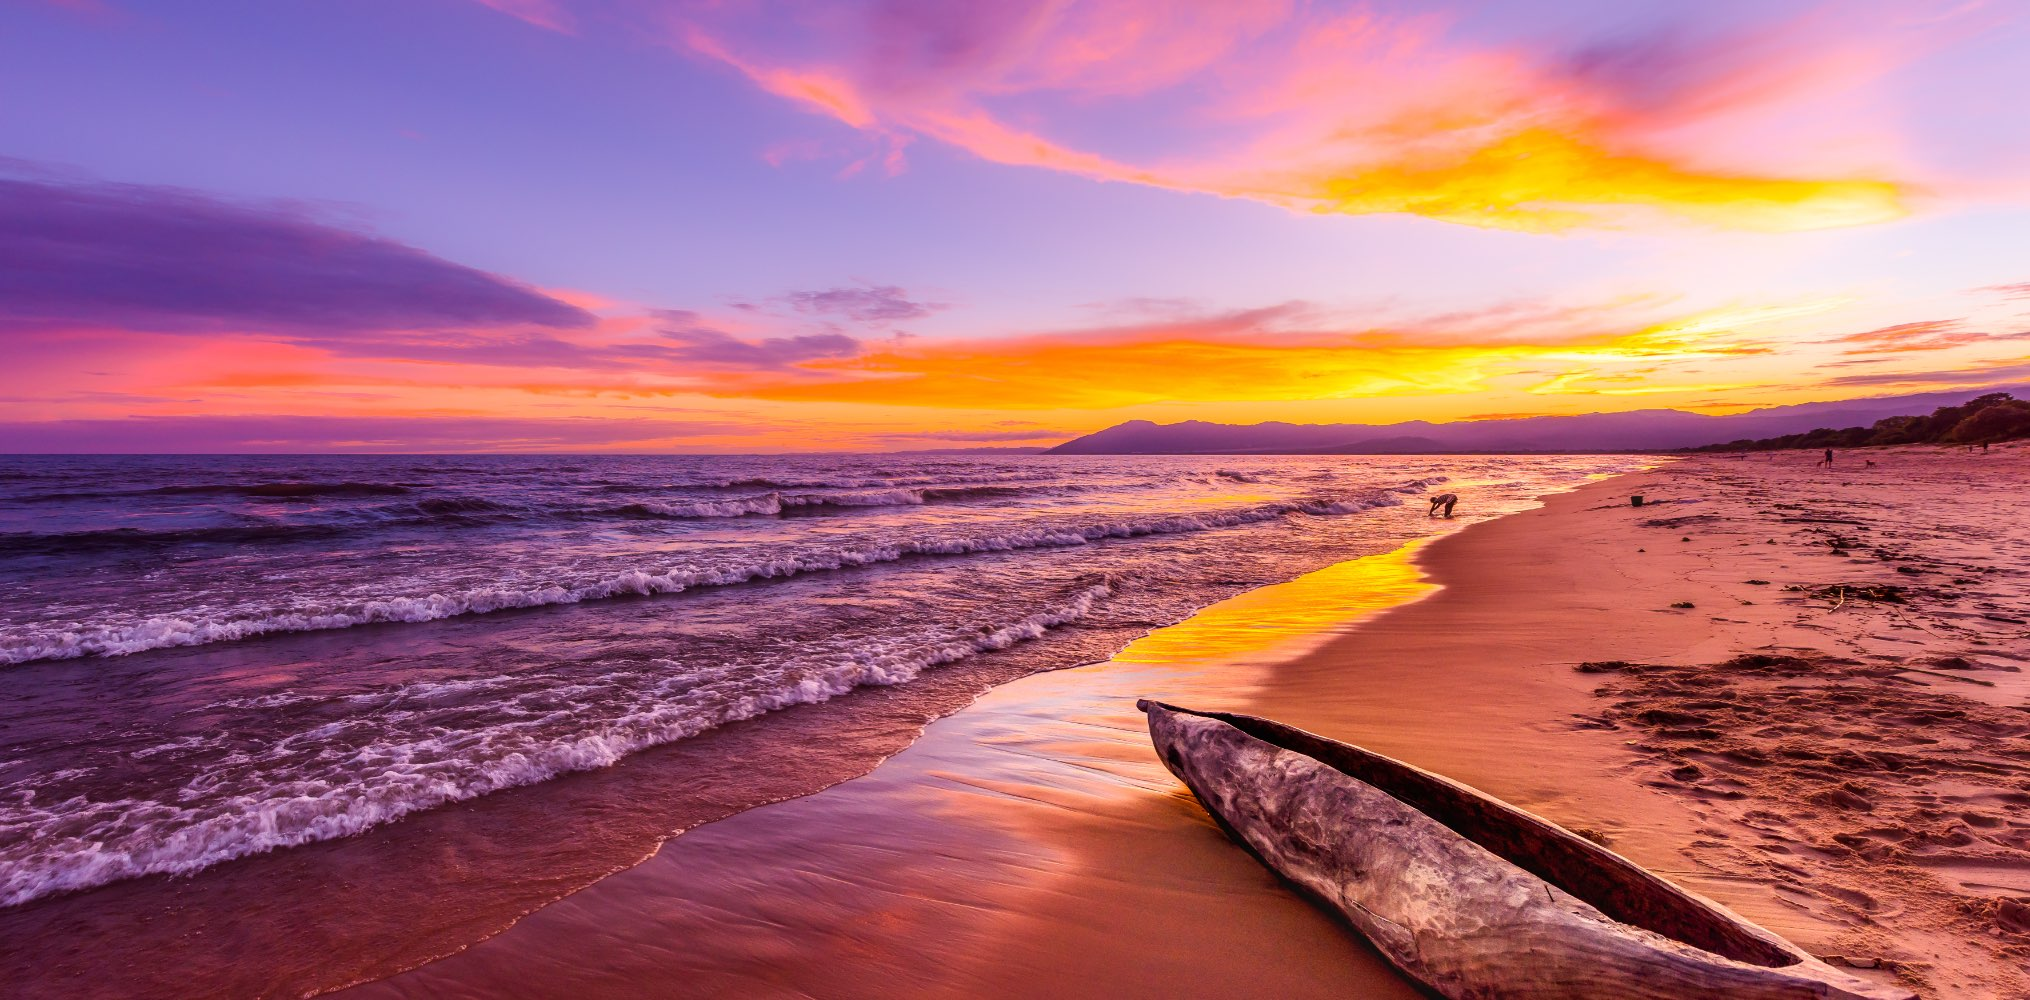 Sunset over the beach and shoreline in Malawi